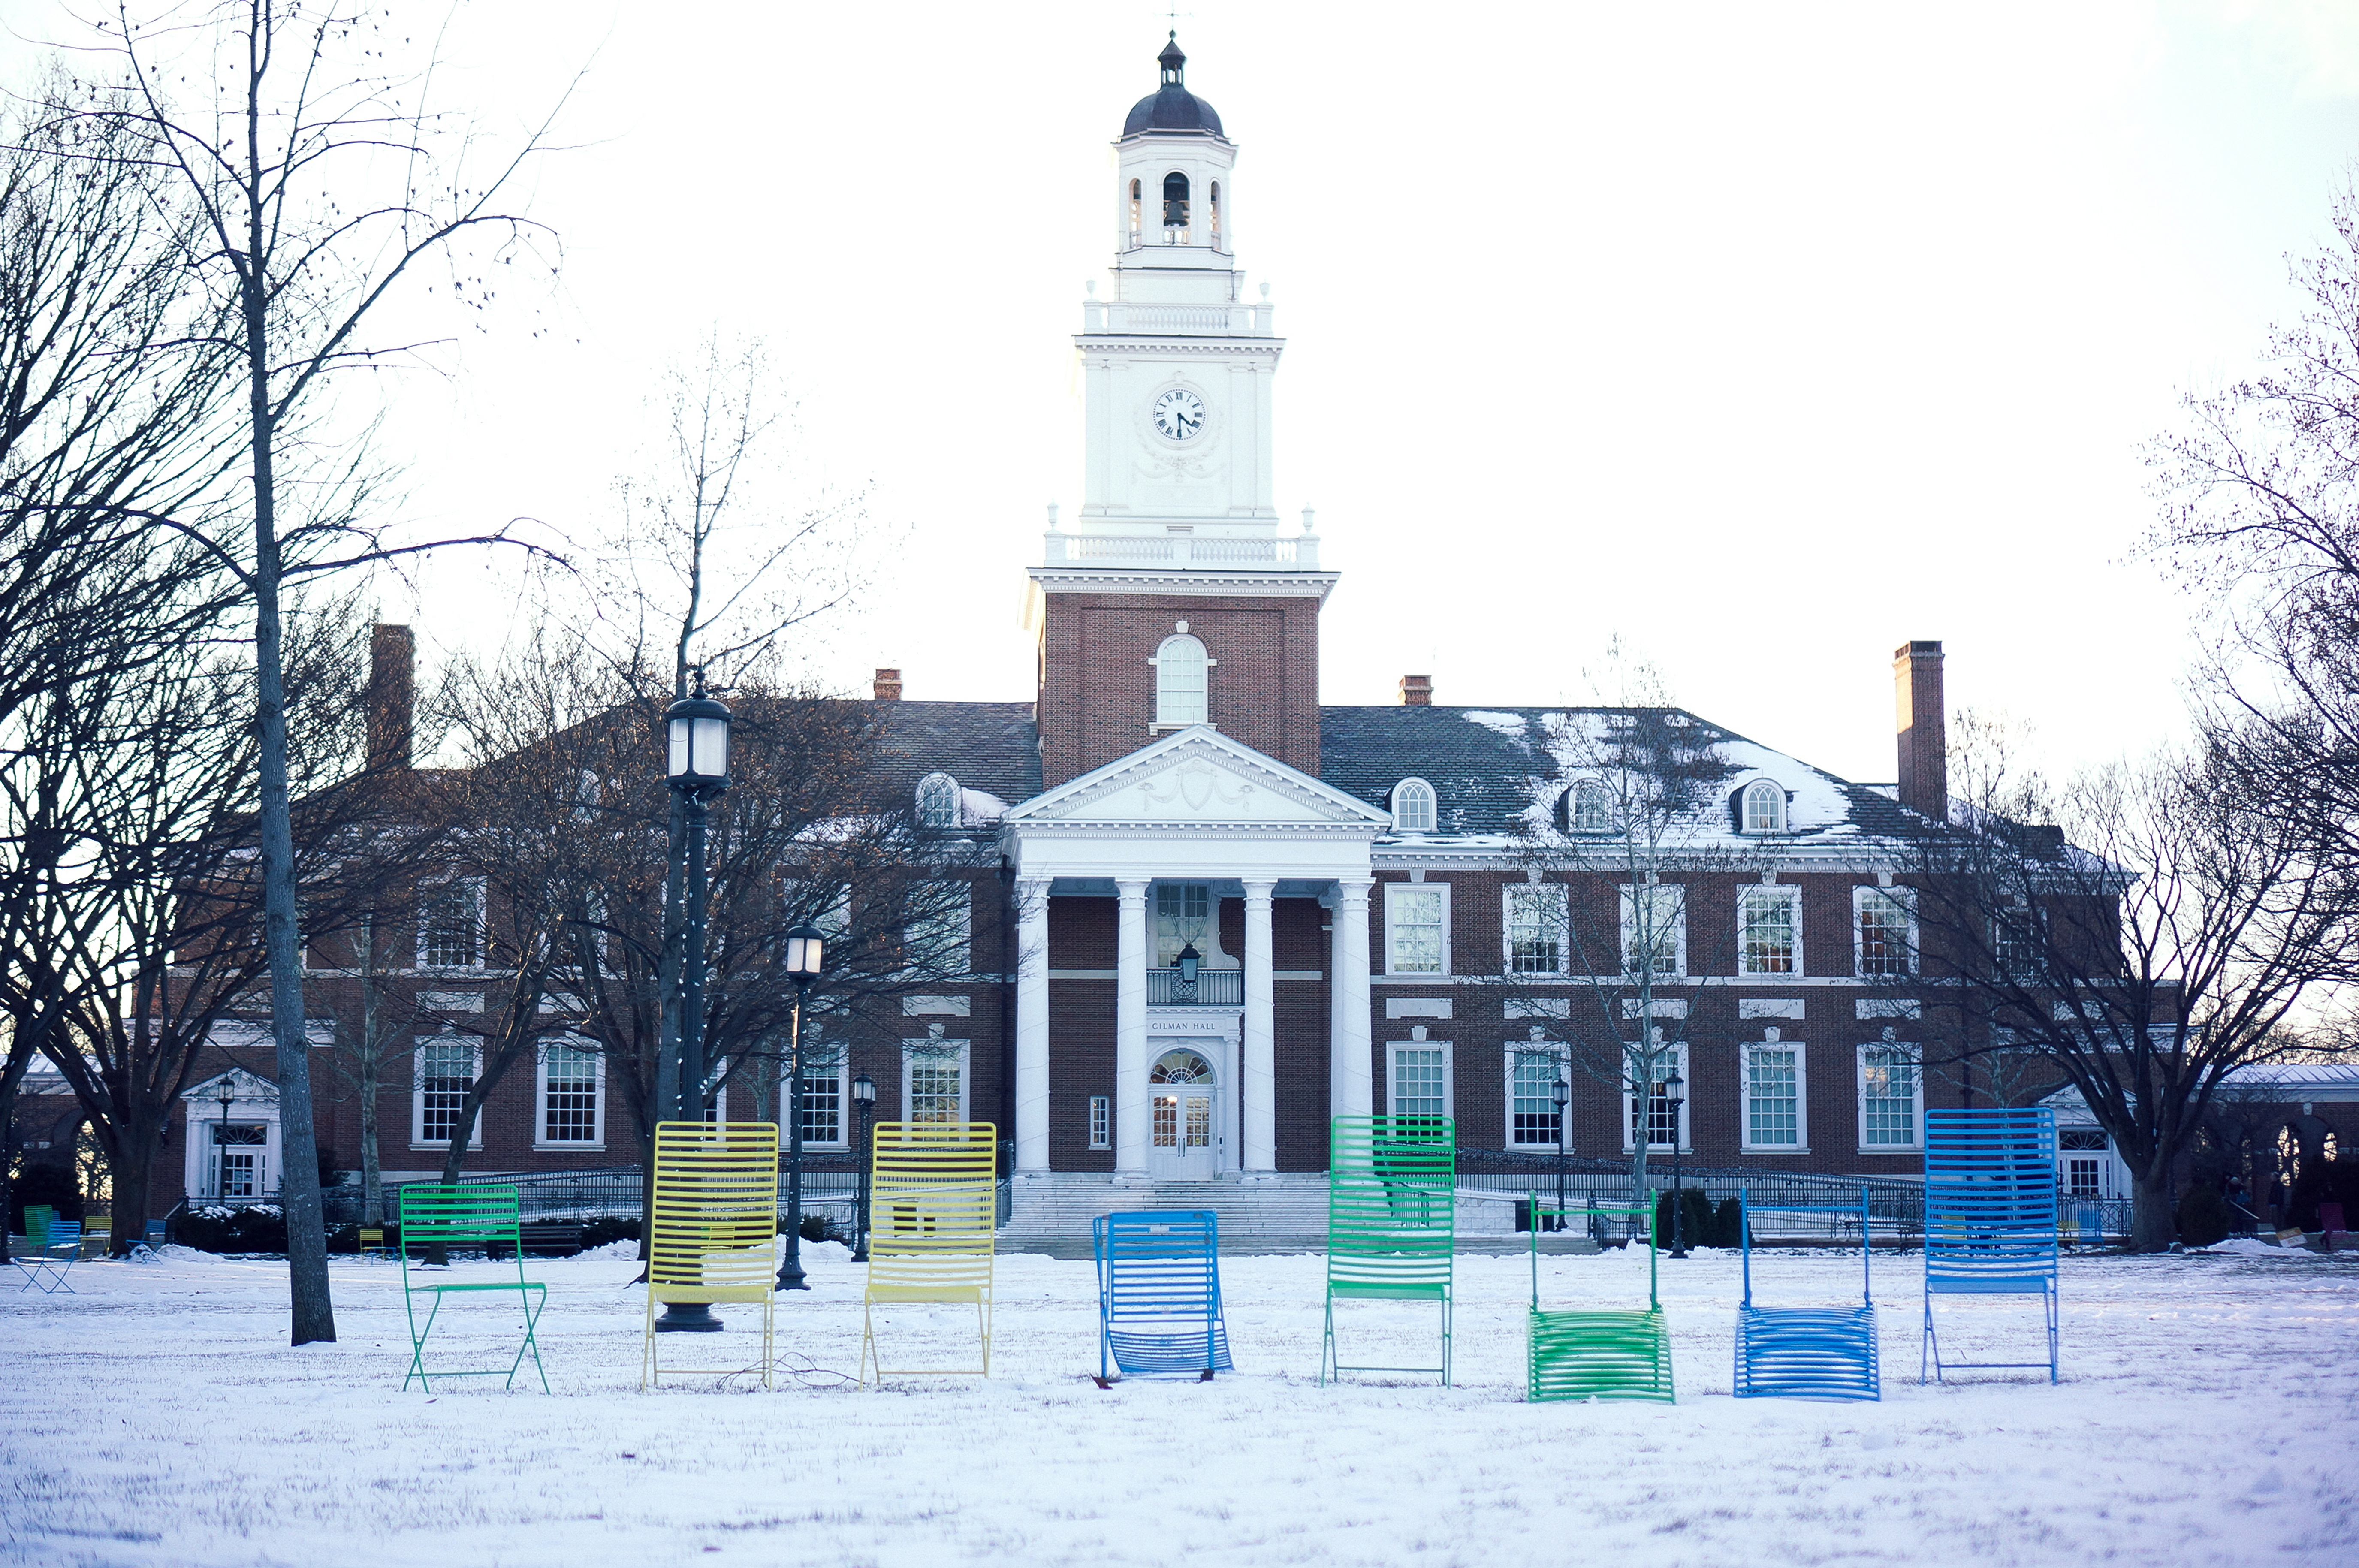 http://An%20Elite%20College%20Has%20Dropped%20Legacy%20Admissions—It's%20Time%20for%20Other%20Higher%20Education%20Institutions%20To%20Do%20the%20Same